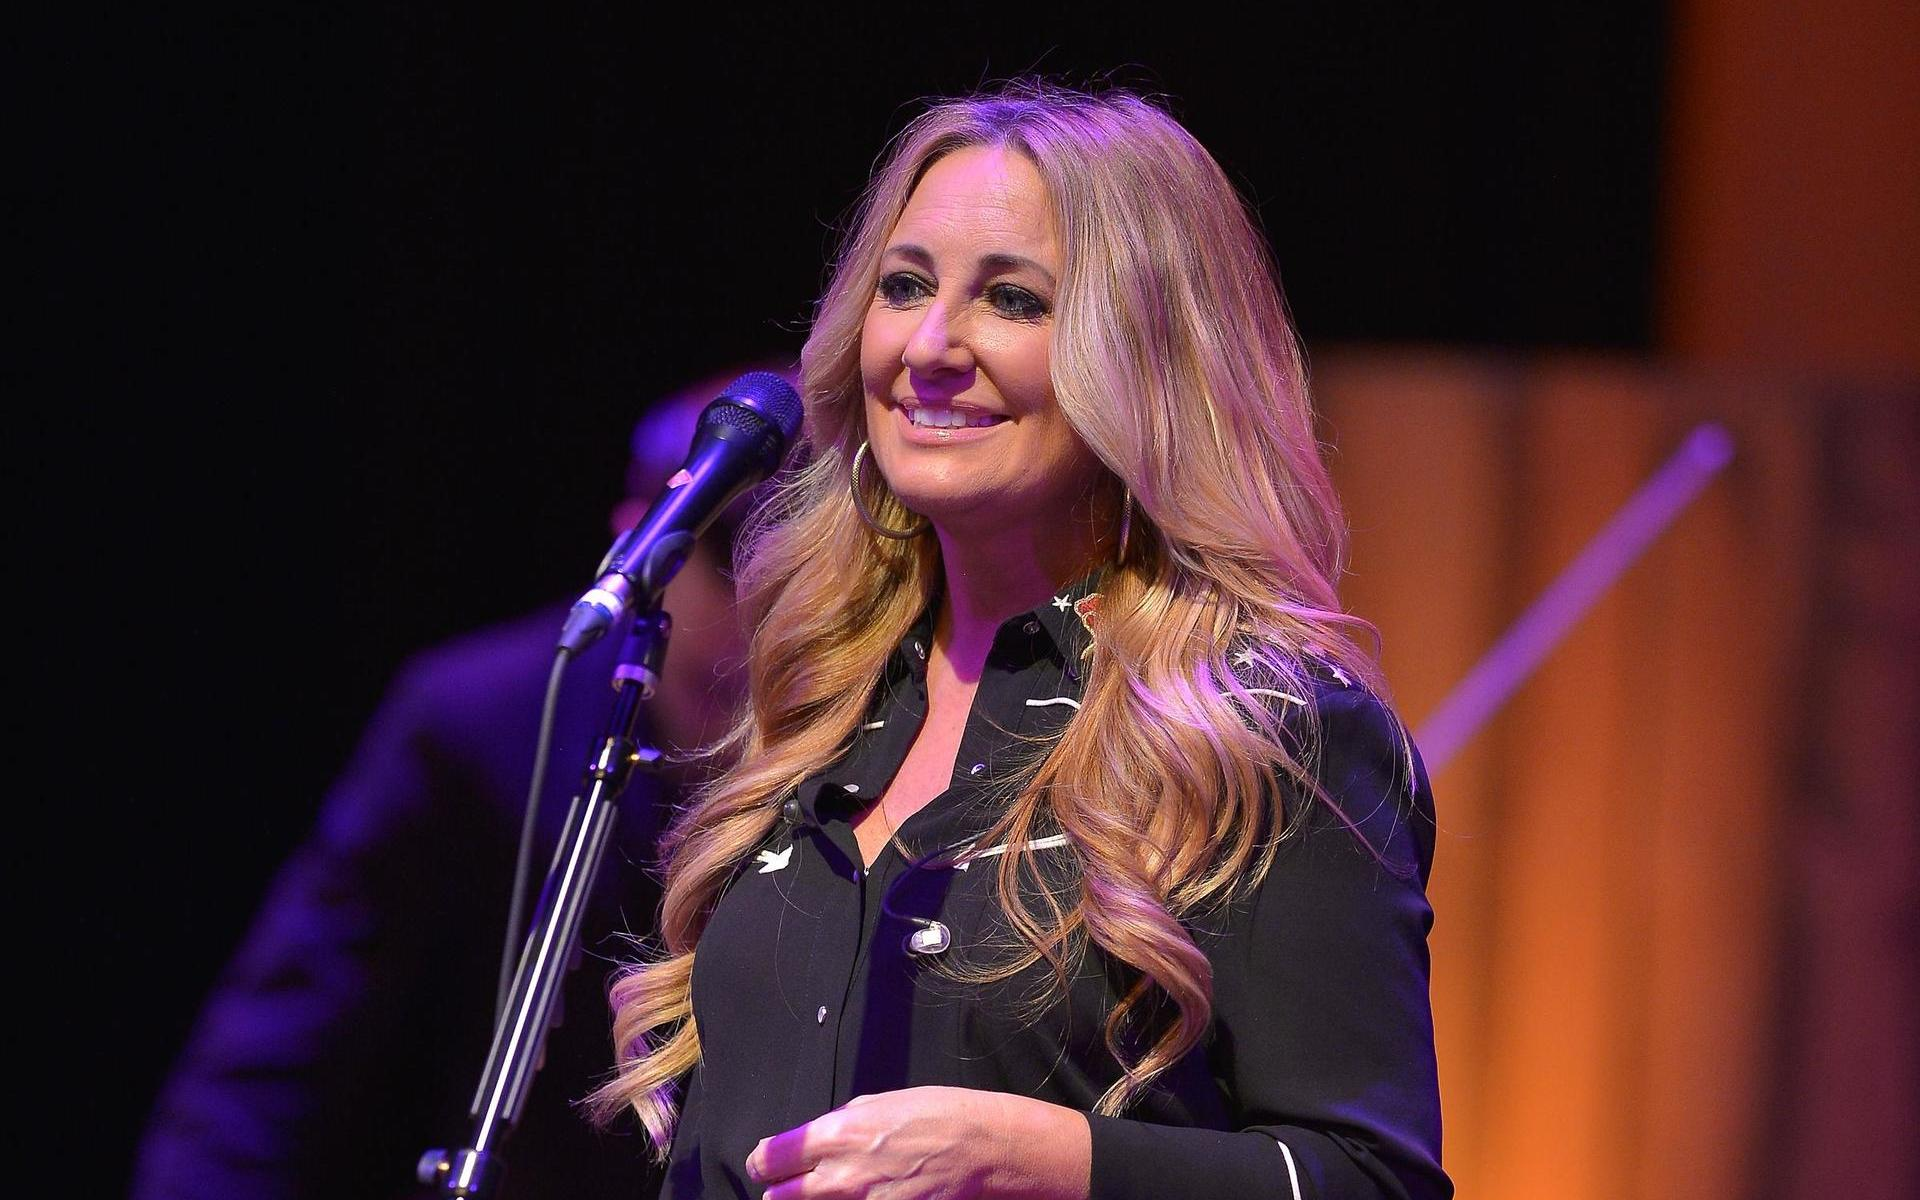 """Lee Ann Womack brings her """"Solitary Thinkin' Acoustic Tour"""" to The Birchmere Music Hall in Alexandria, Virginia with Morgan Wade on October 18, 2019, @ 7:30 PM."""